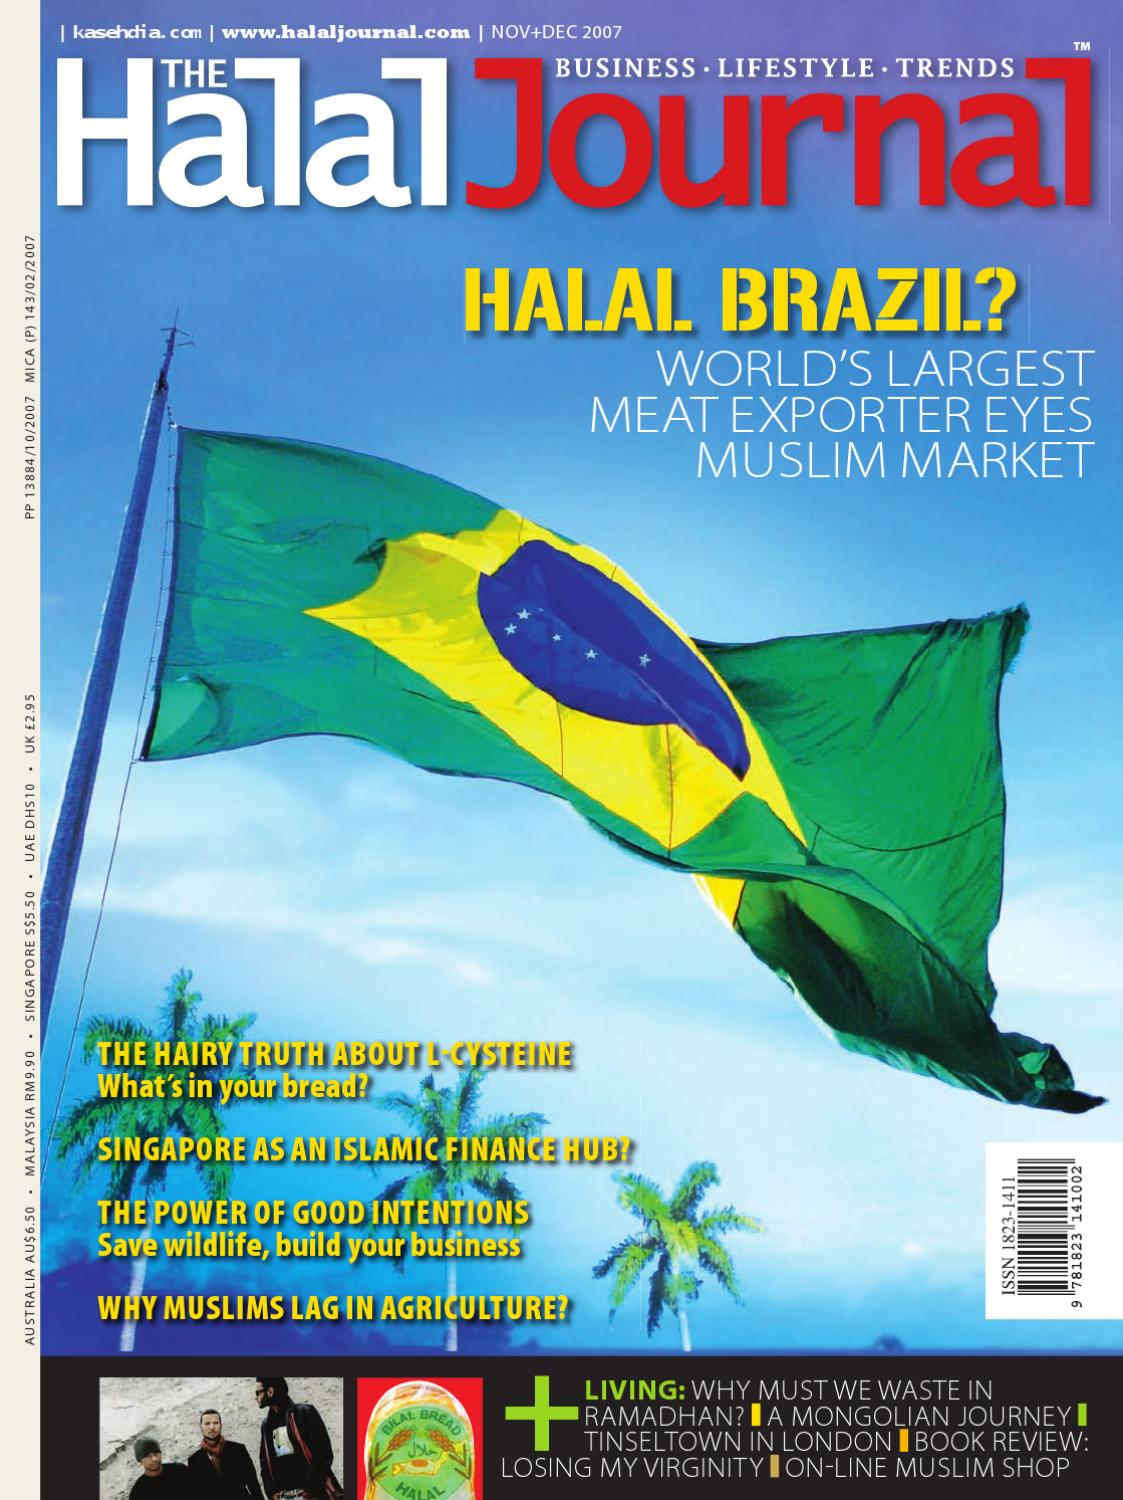 The Halal Journal - Nov/Dec 2007 by The Halal Journal - issuu